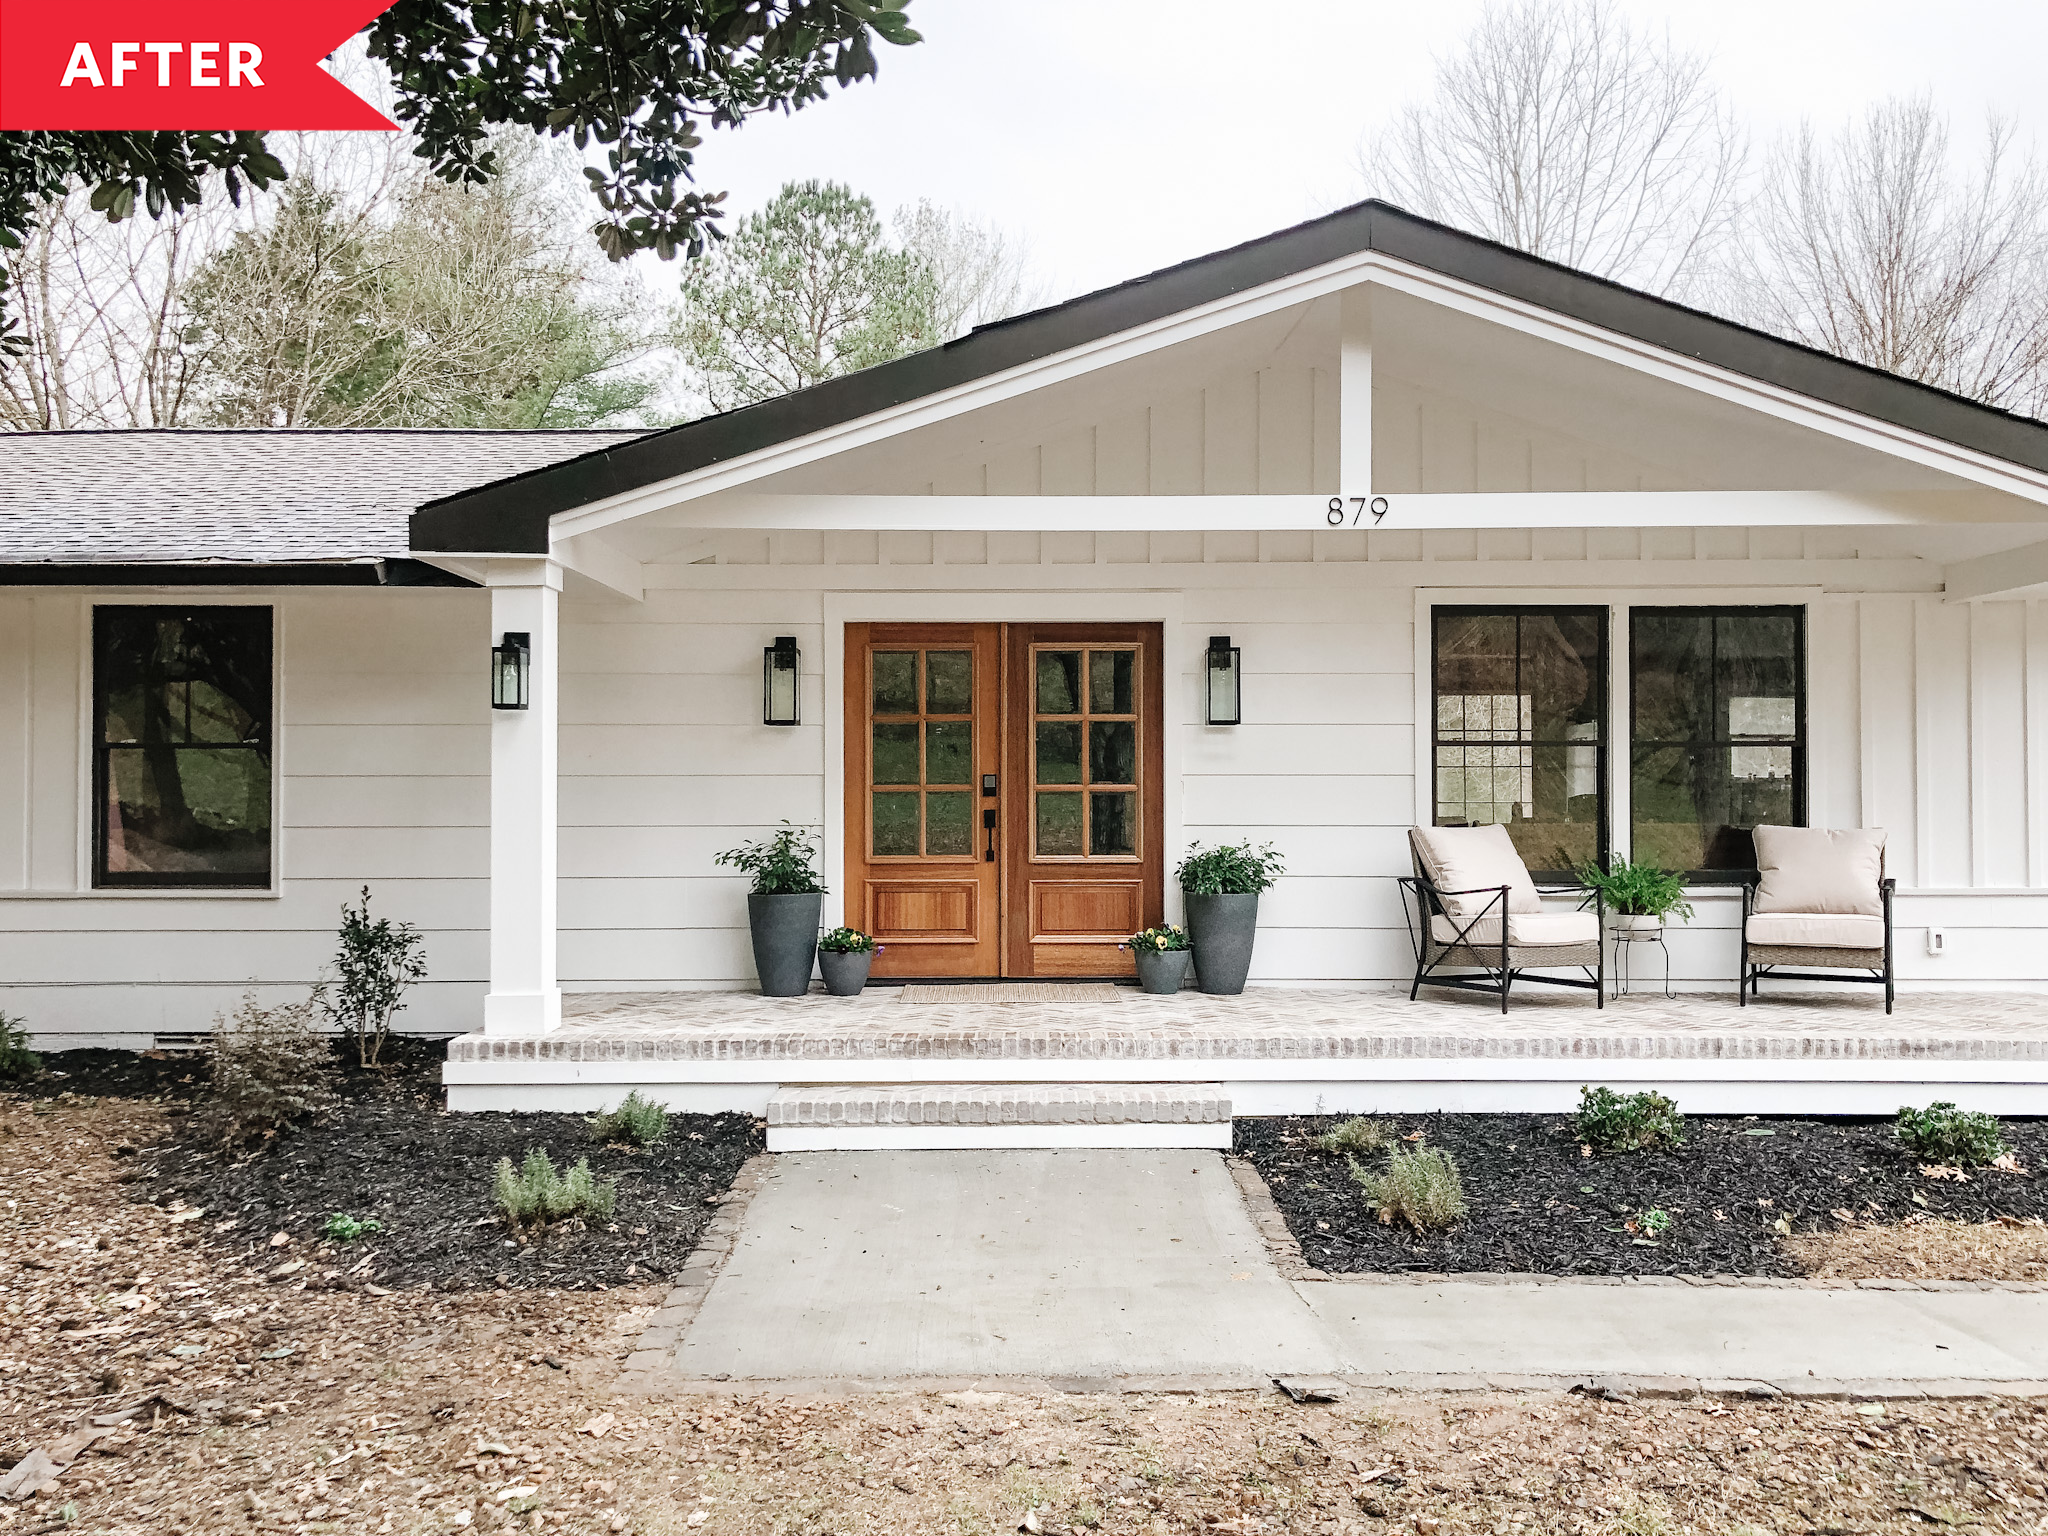 15 Before-and-After Curb Appeal Makeovers